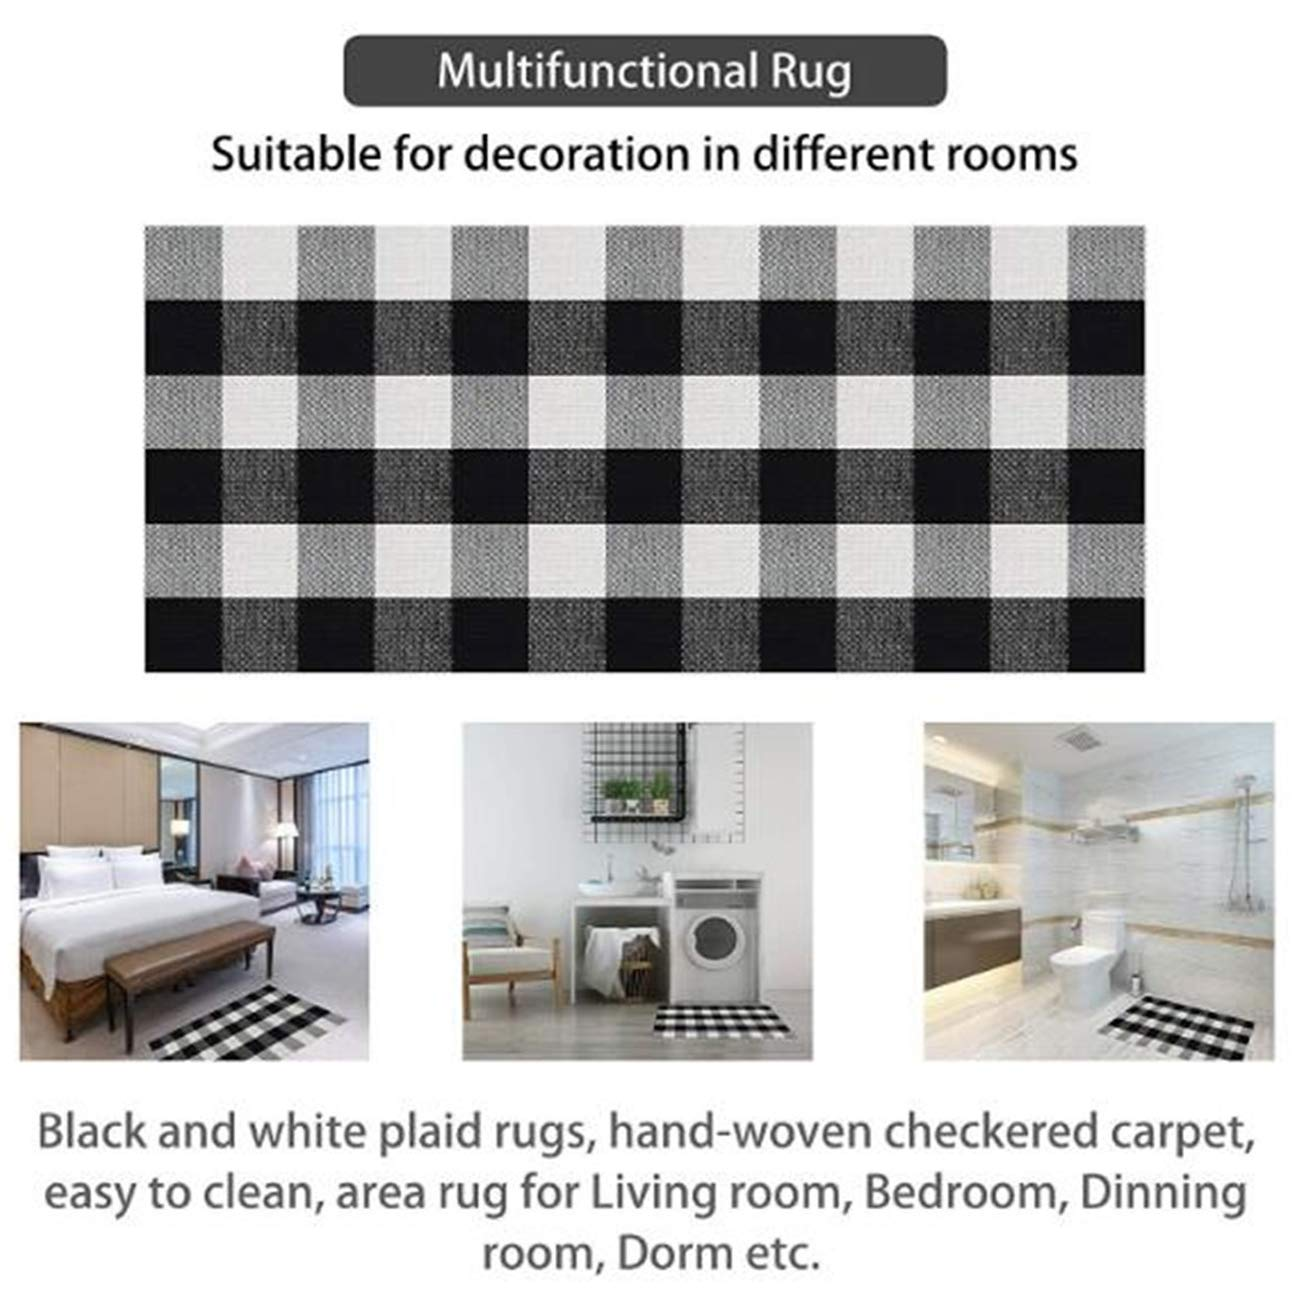 Buffalo Plaid Rug Indoor Outdoor Buffalo Check Rug, Farmhouse Rugs for Doorway Kitchen/Bathroom/Front Porch/Decor - Layered Welcome Plaid Rug Doormats (24\